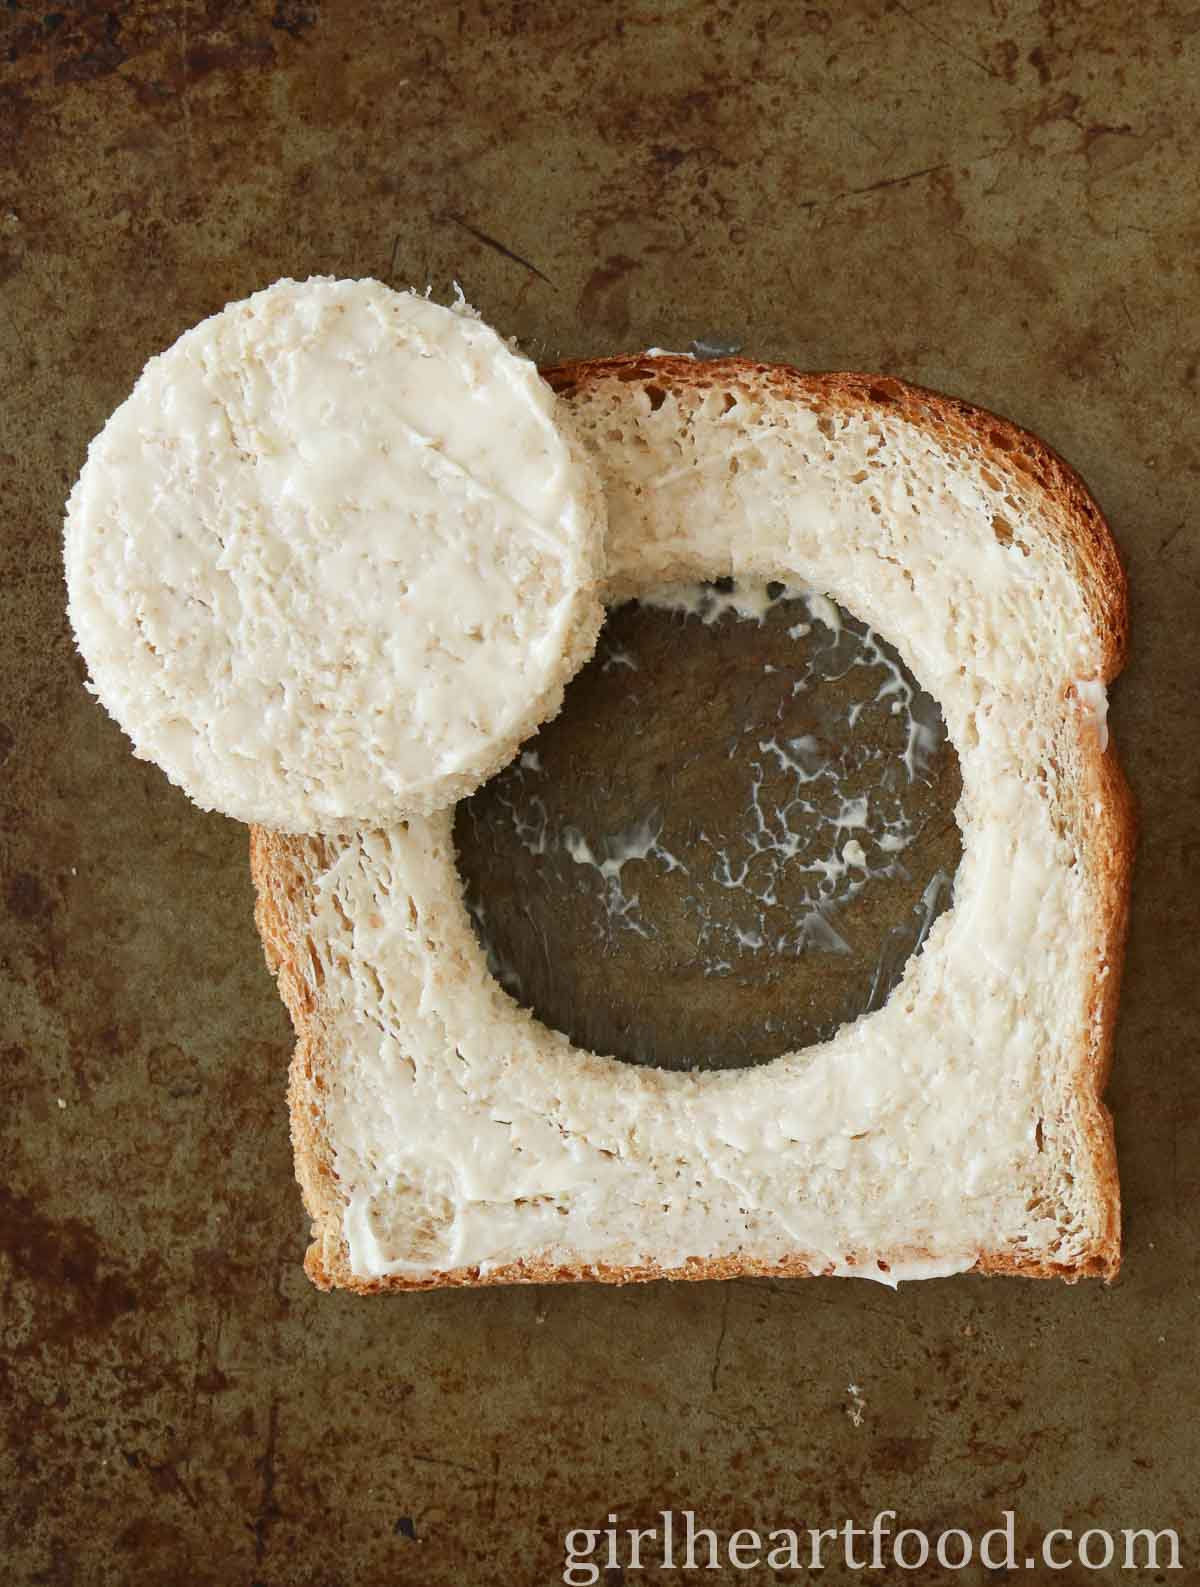 Slice of buttered bread with a circle cut out, leaving a hole in the centre of the bread.